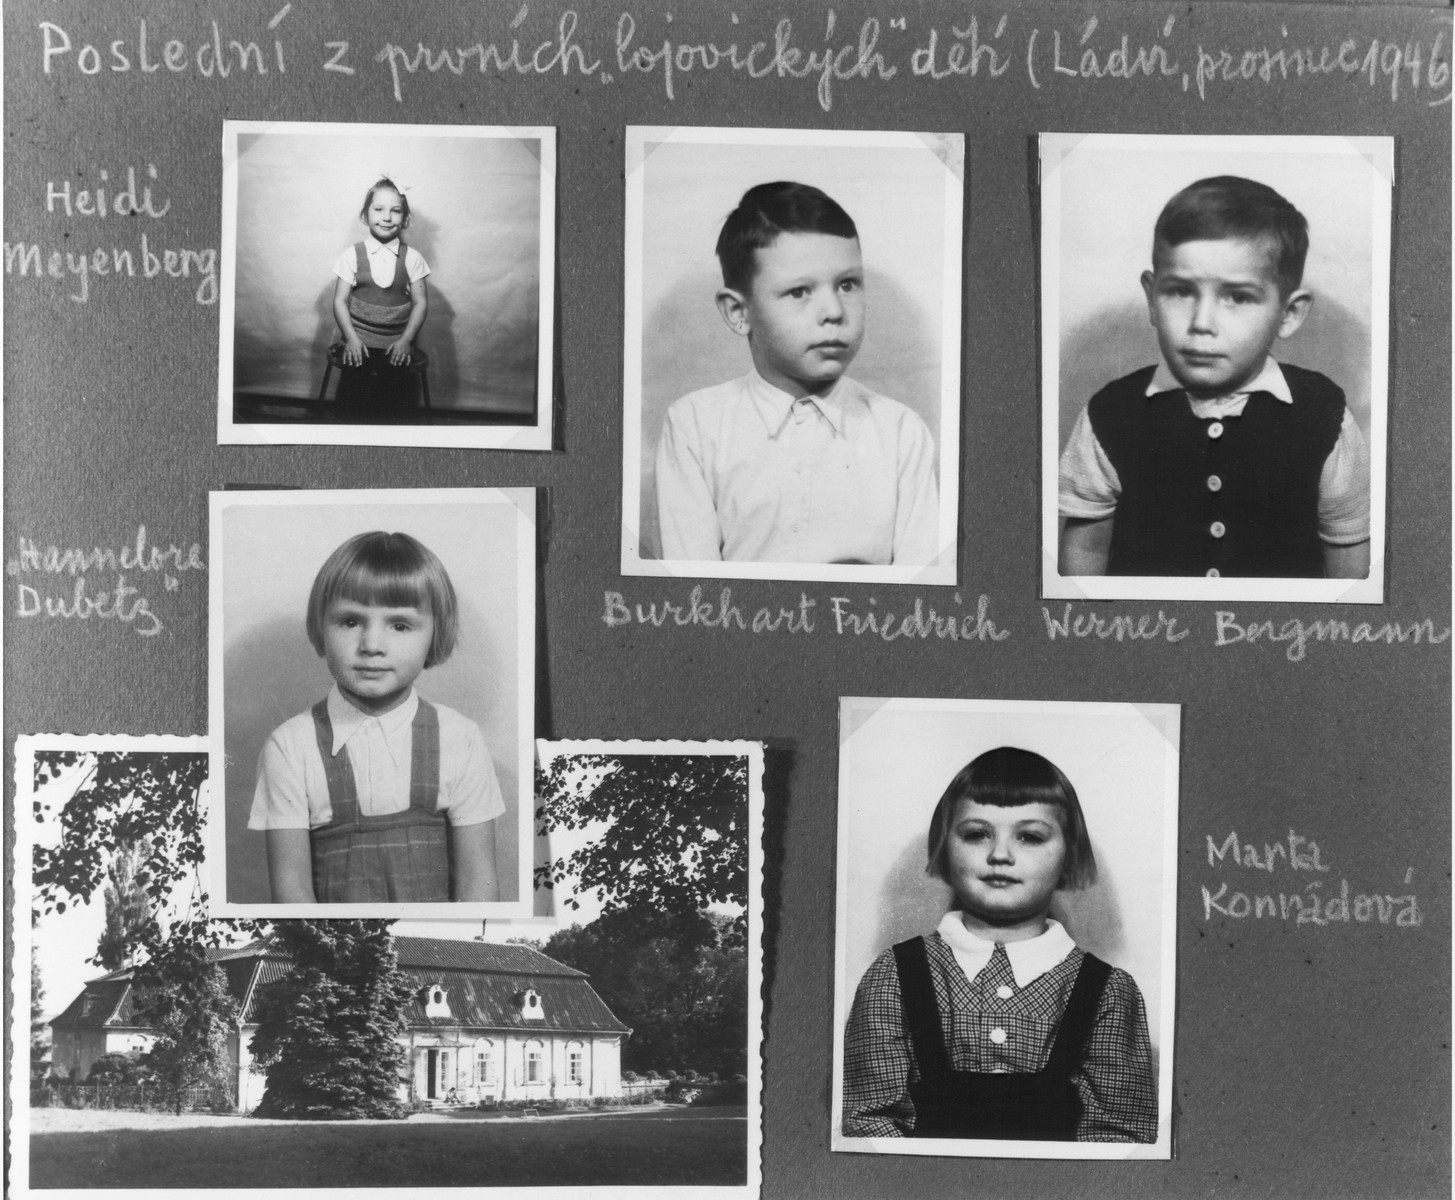 """Composite photograph of DP children in Lojovice, one of """"The Castles"""" children's homes established by Premysl Pitter and Olga Fierzova.  The Czech inscription at the top reads: """"The last of the first Lojovice children (Ladvi, December 1946)."""""""